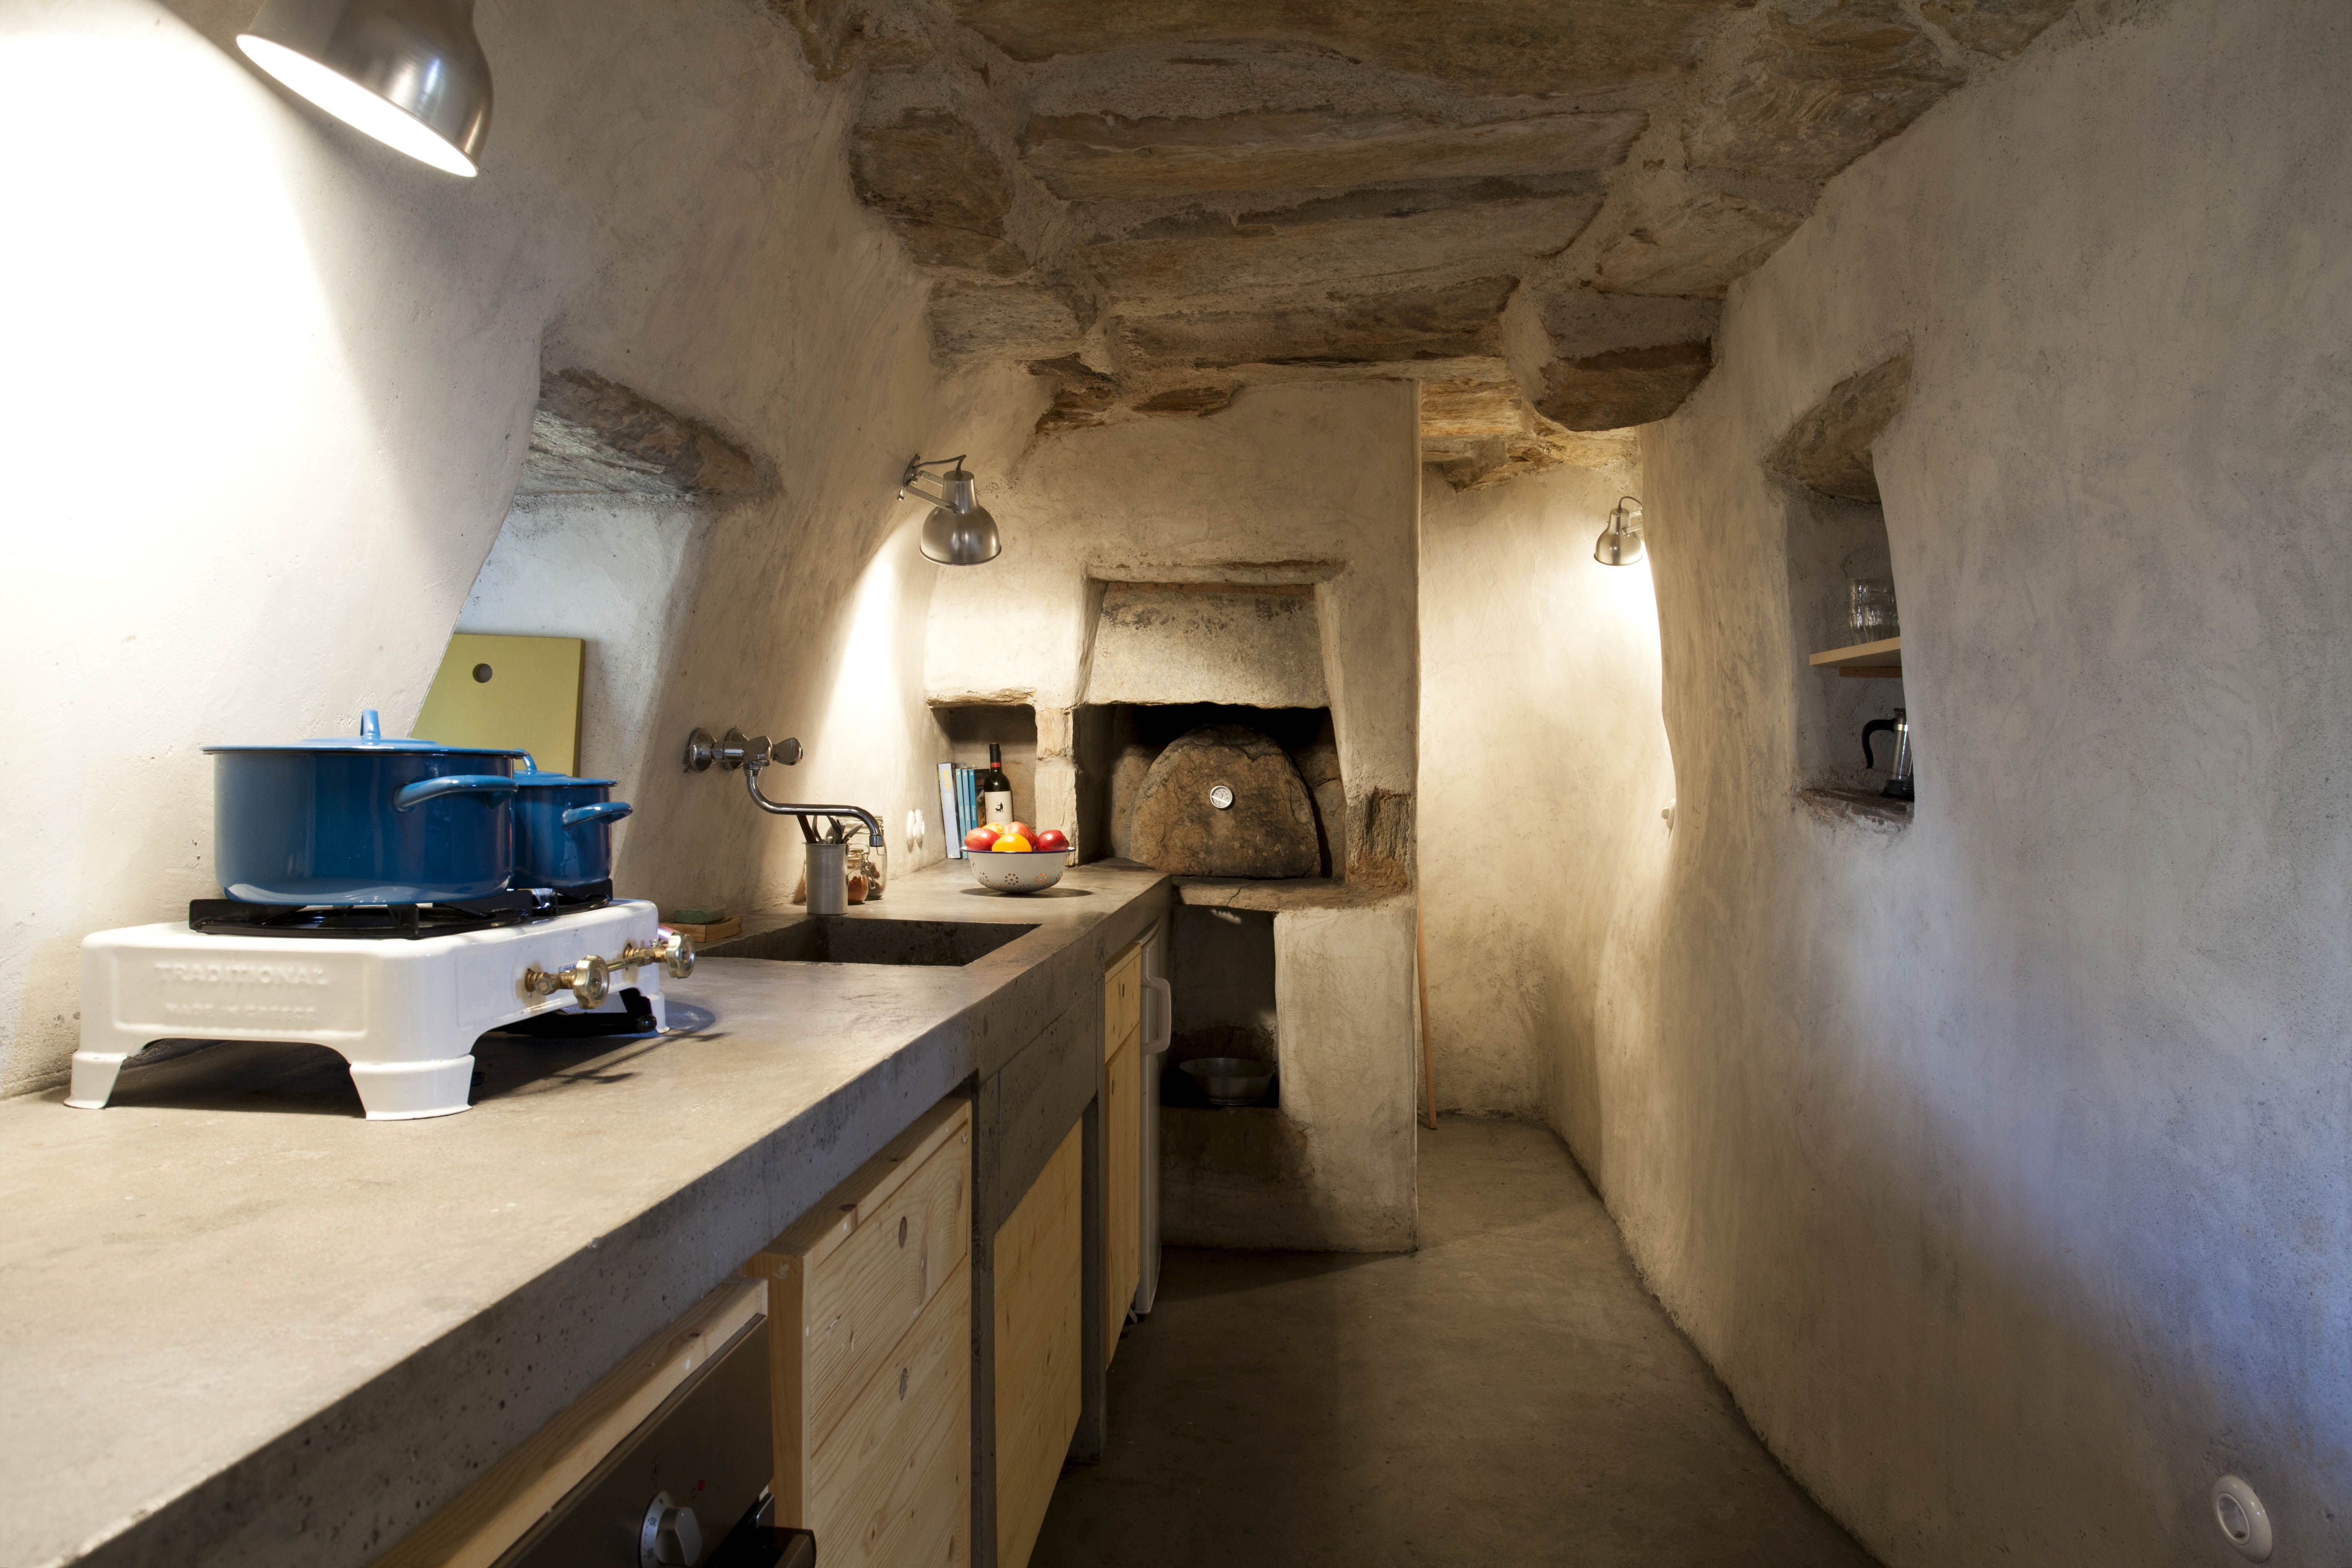 The old wood oven in the kitchen.